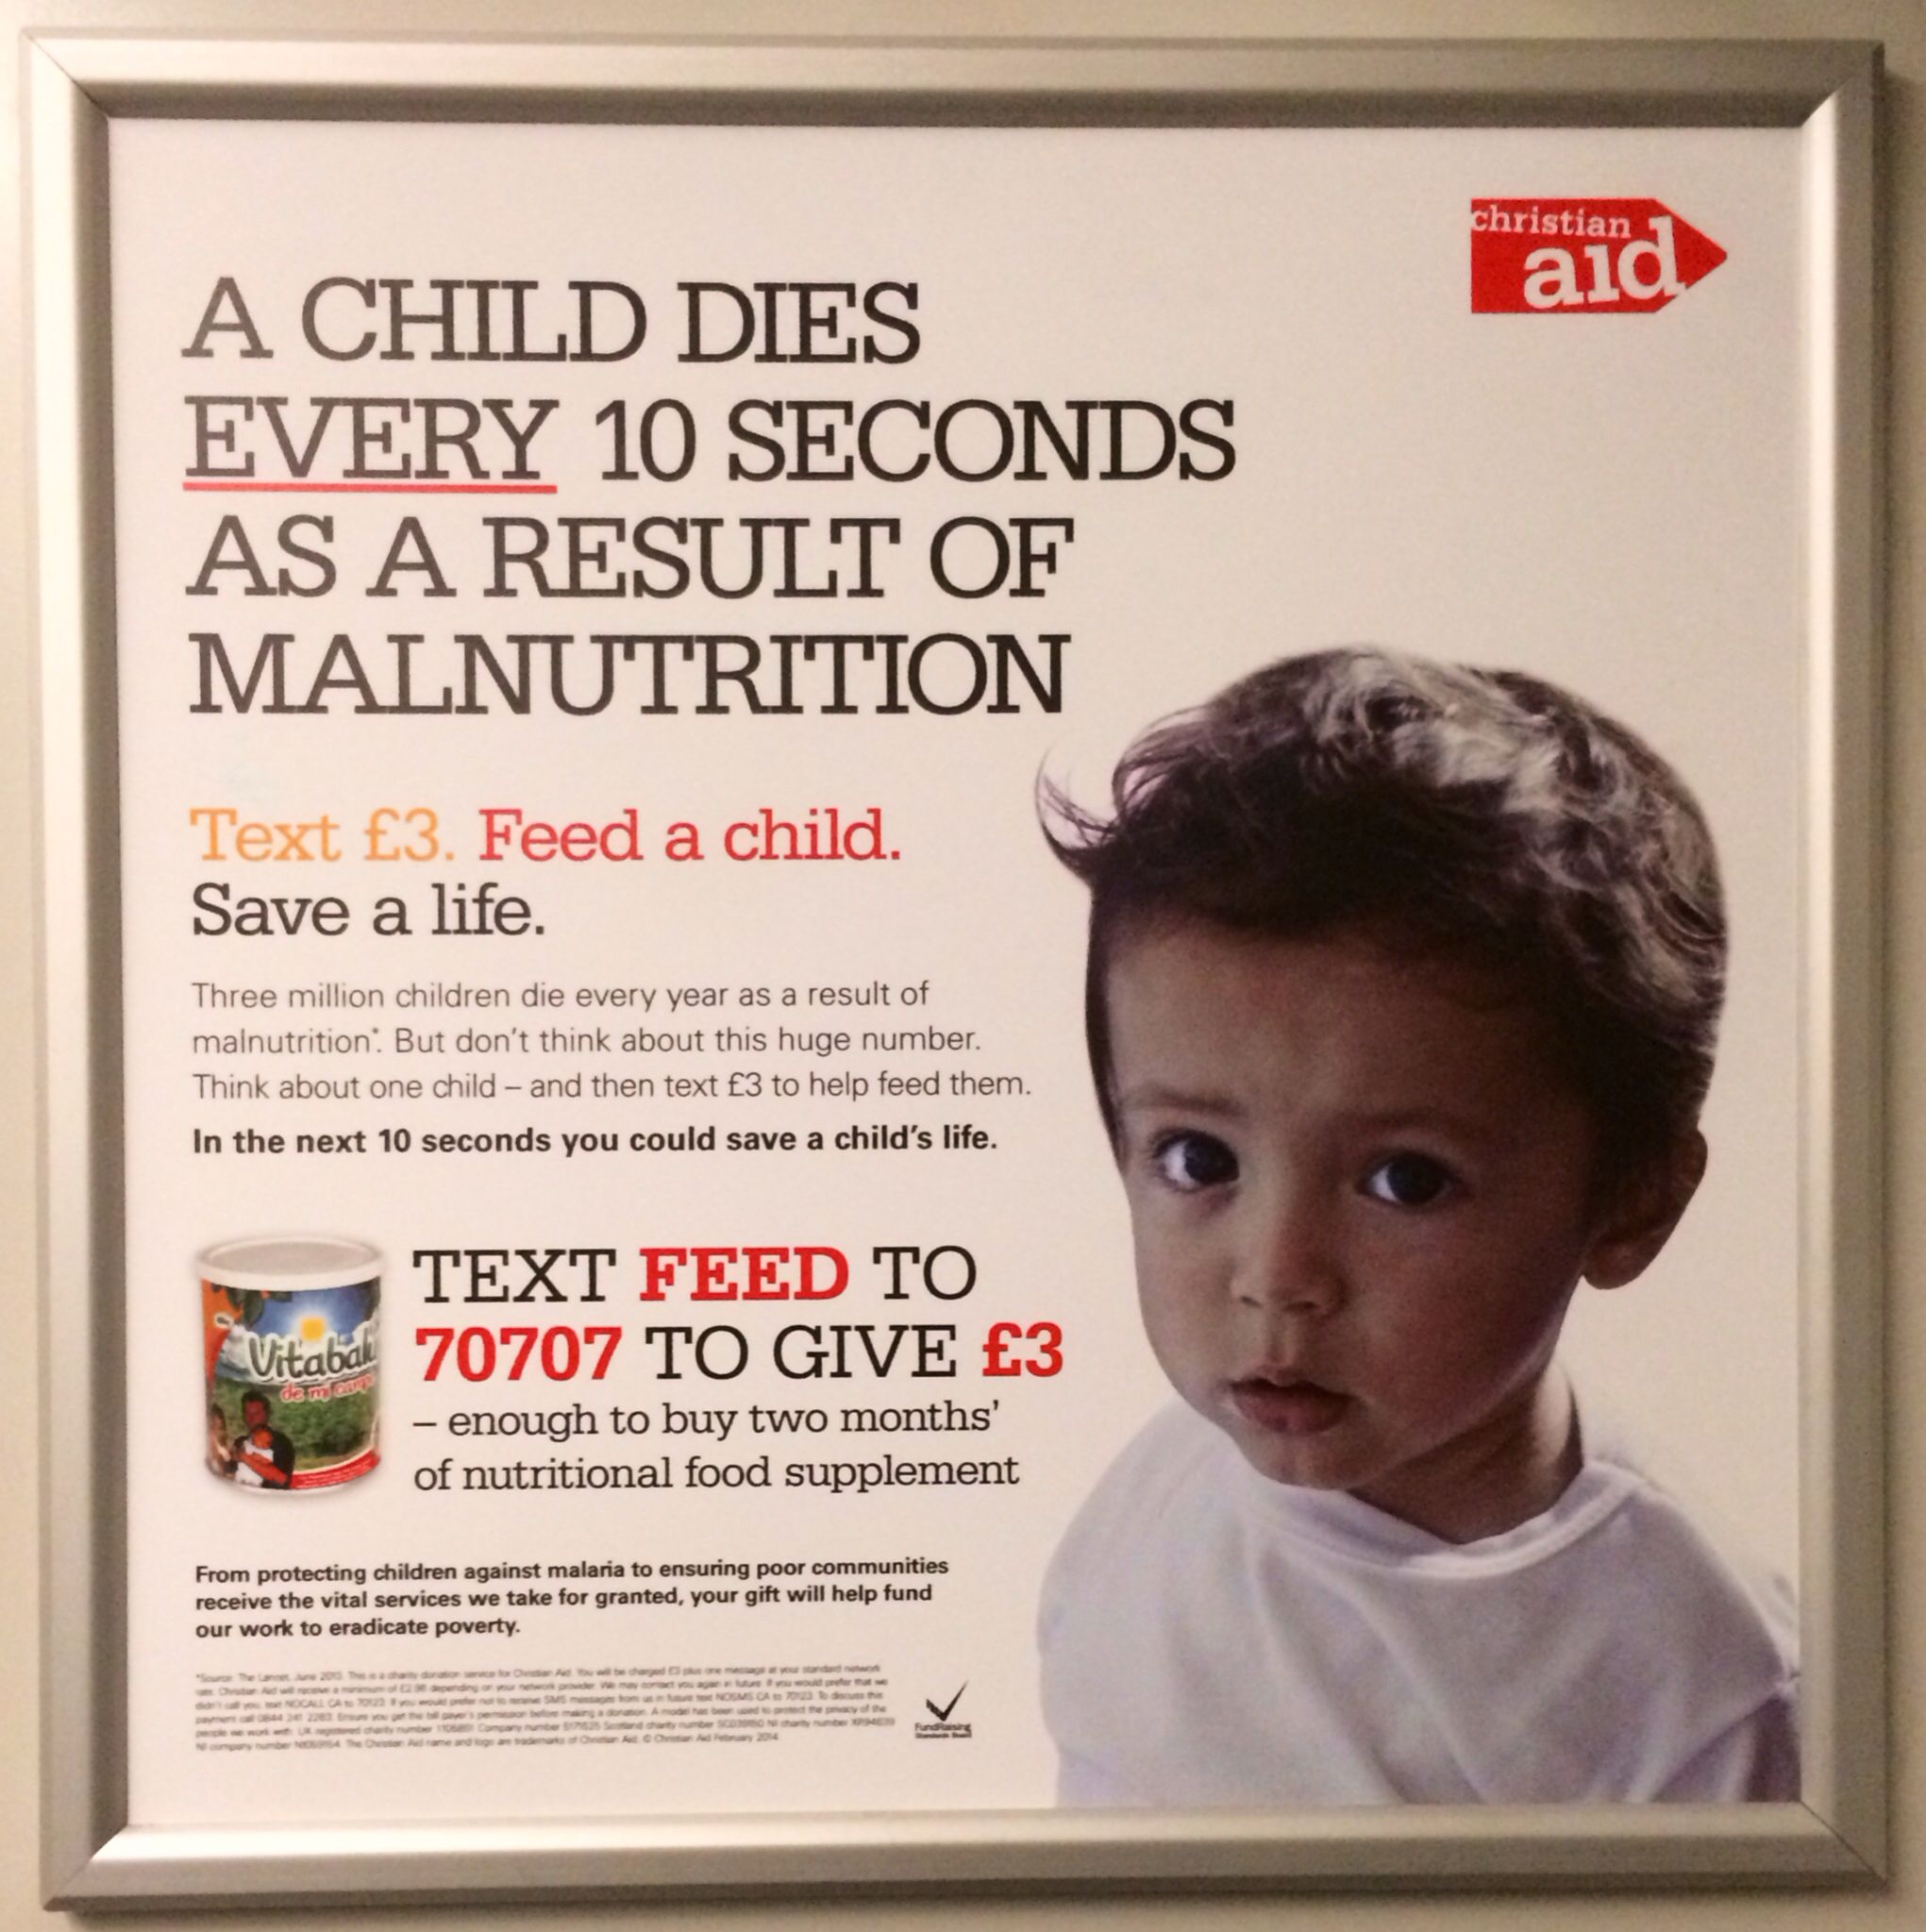 Here Is Another Ad We Spotted On The 24th February 2014 For Christian Aid It Calls For 3 Donations By T Compassion Fatigue Feeding Kids Malnourished Children